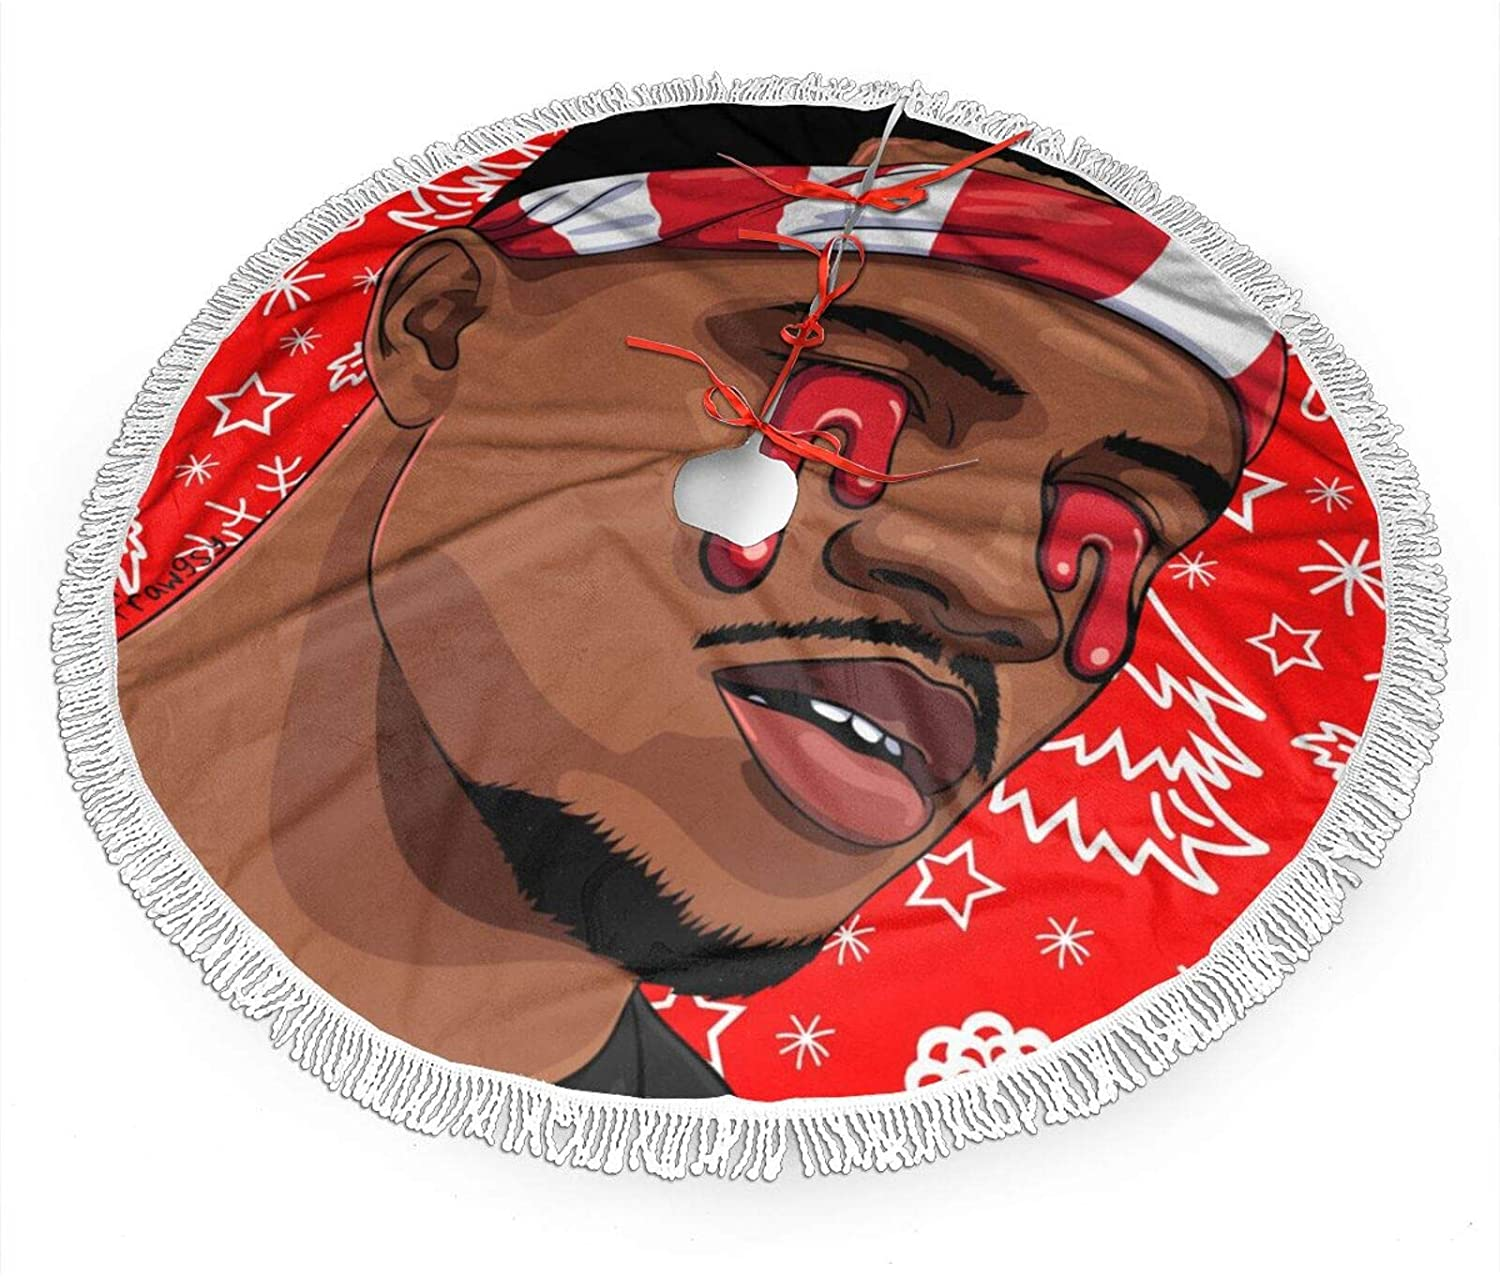 HYANGLIQGB Christmas Tree Skirt Frank Ocean Christmas Holiday Home Office Decorations   Christmas Indoor Outdoor Decorations   Christmas Halloween Holiday Party Decorations